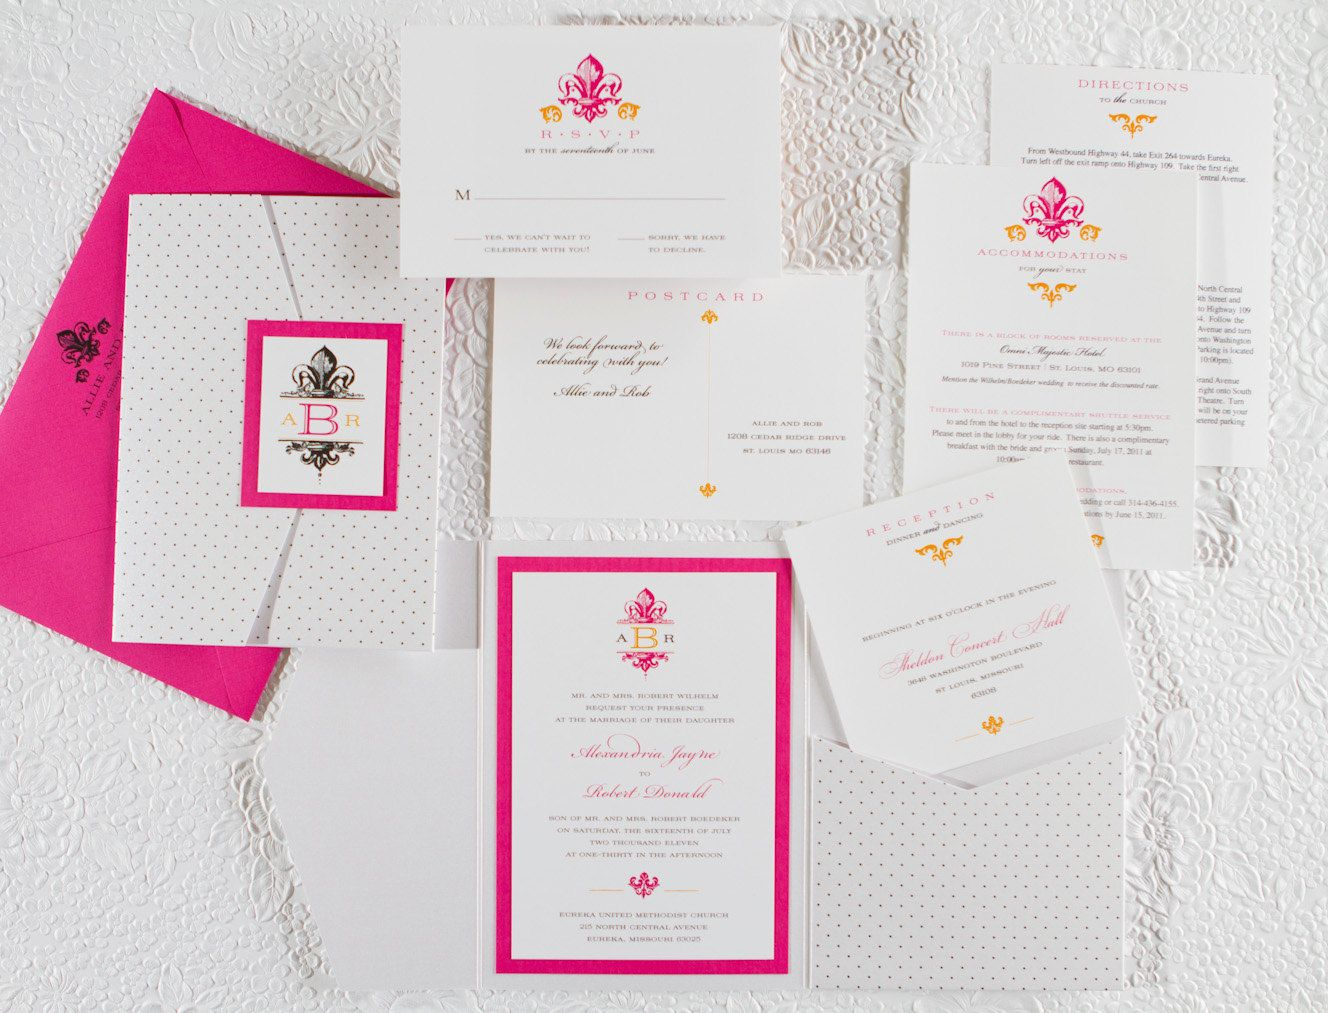 Pink And Polka Dots Fleur De Lis Wedding Invitation Pocket Fold